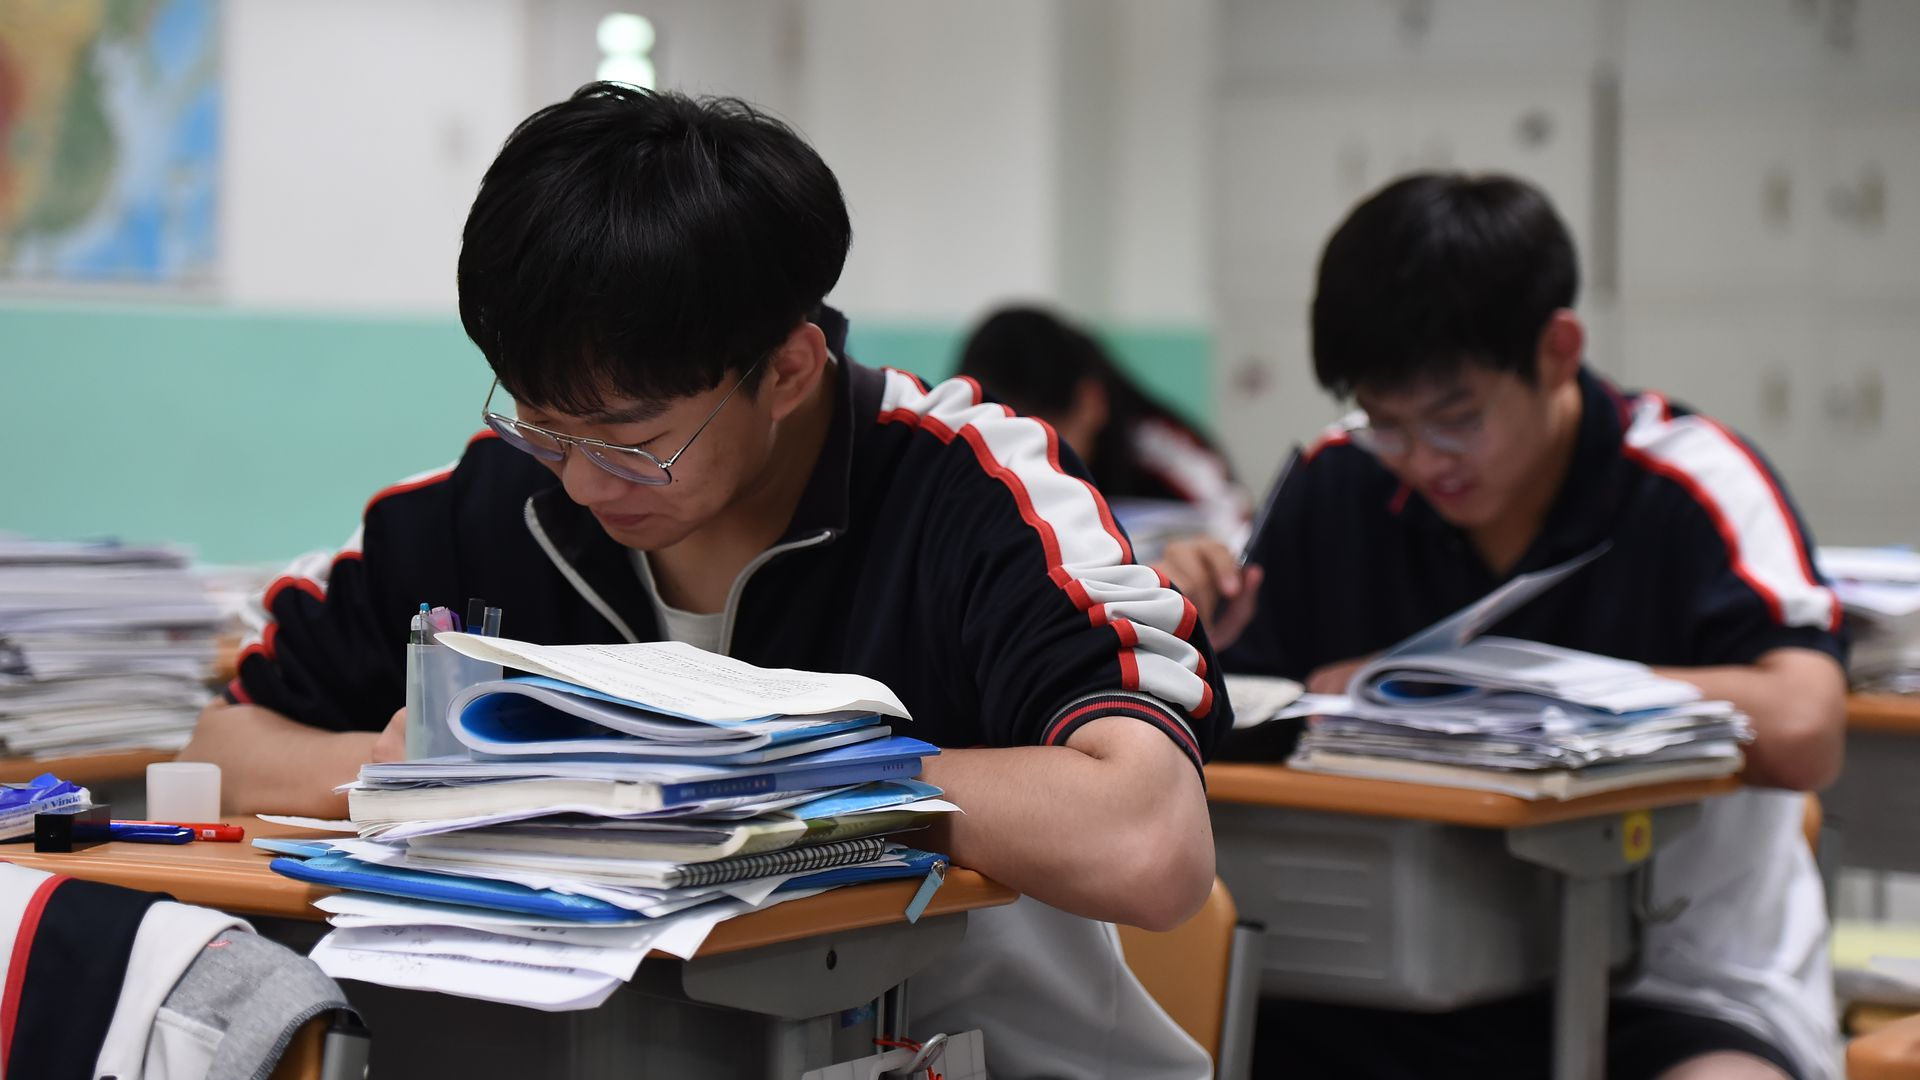 Survey: Chinese students outperforming in reading, math and science